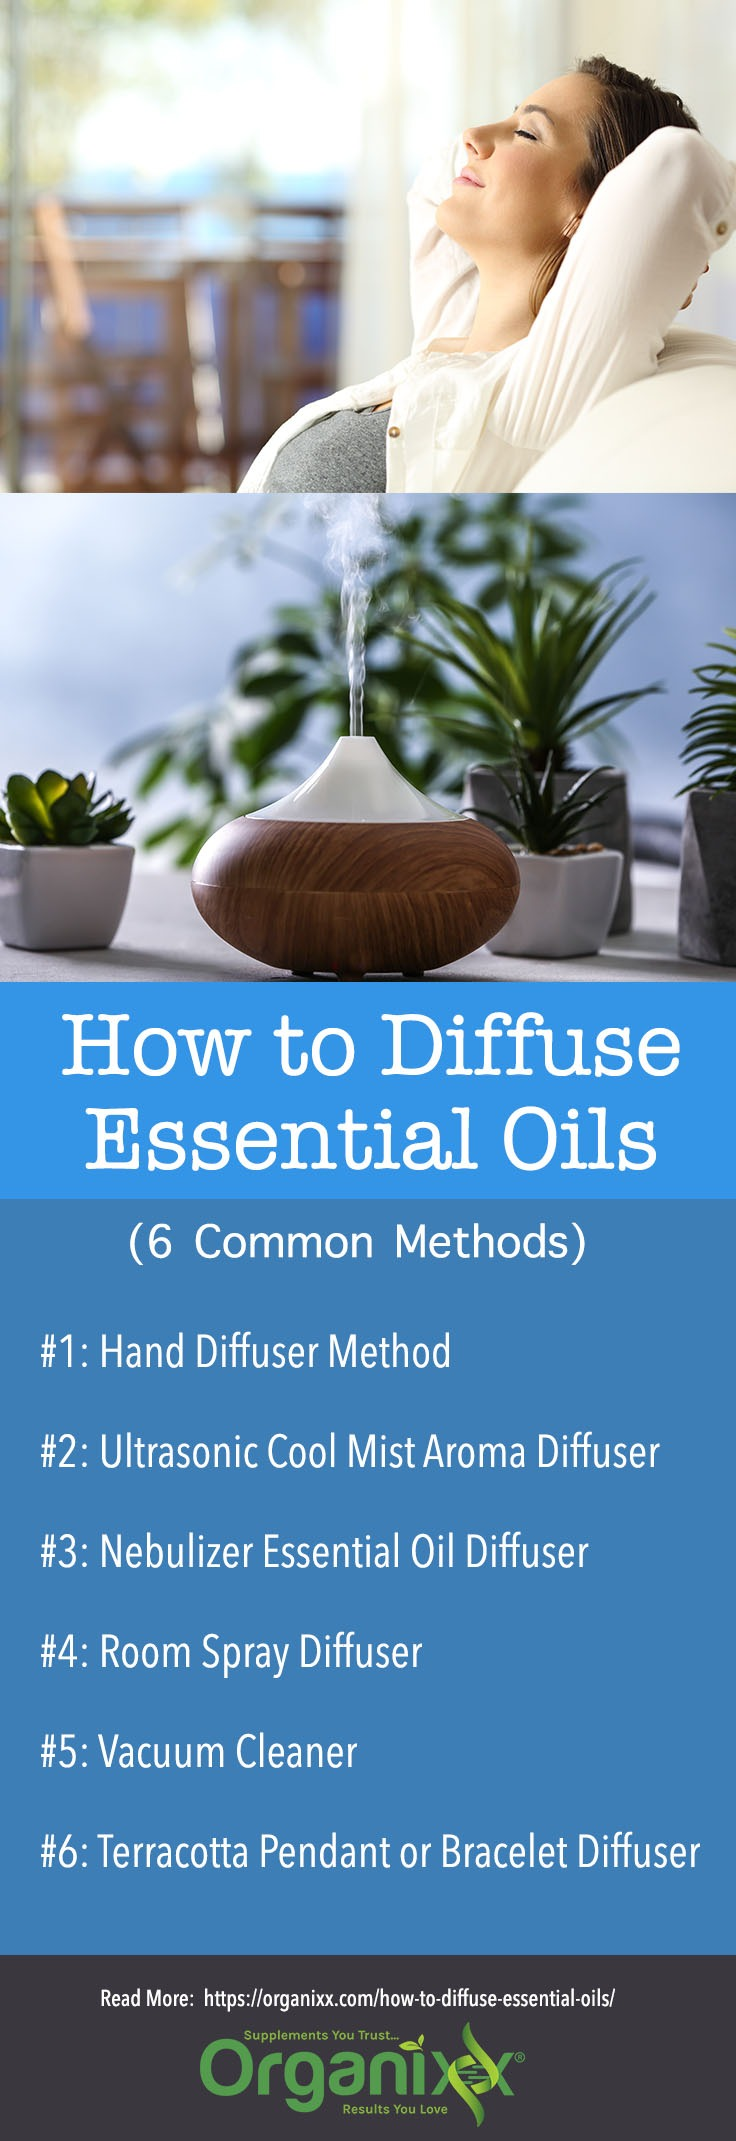 how to diffuse essential oils infographic